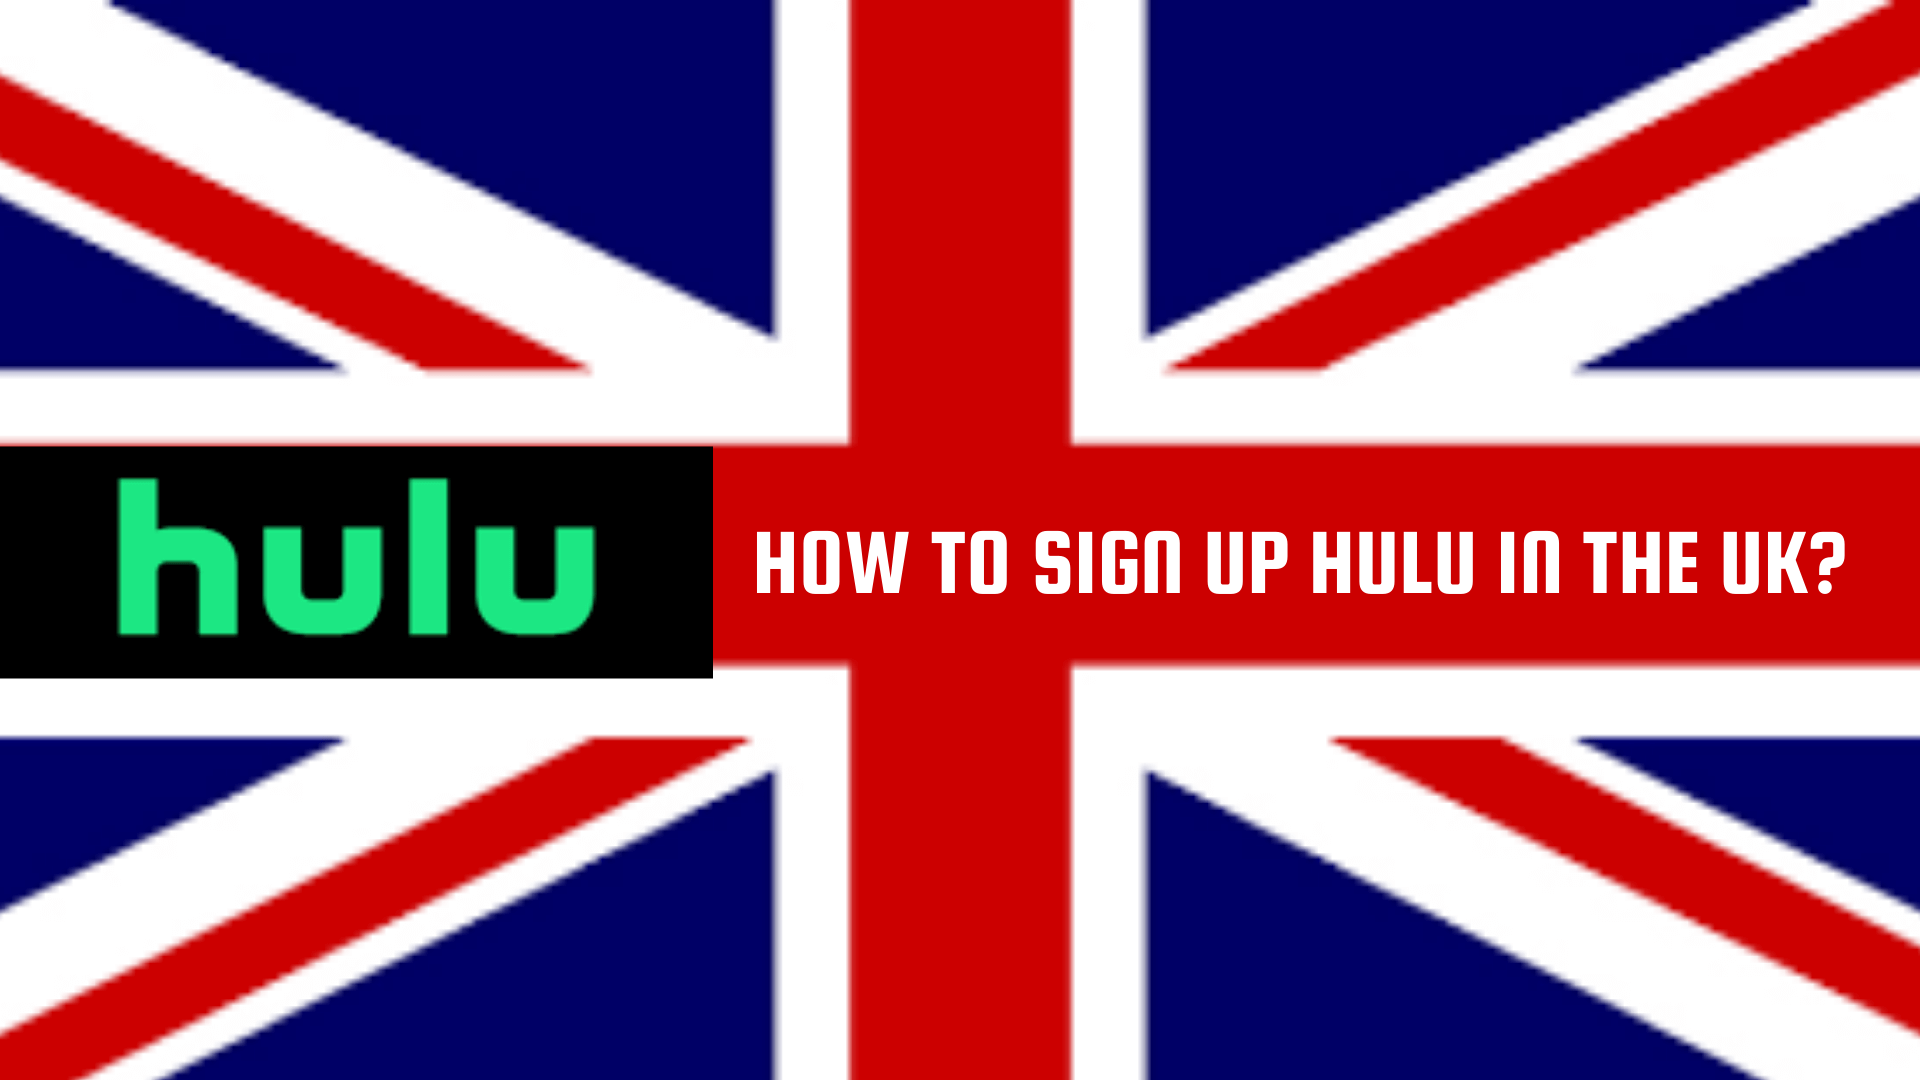 How to Sign up Hulu in the UK